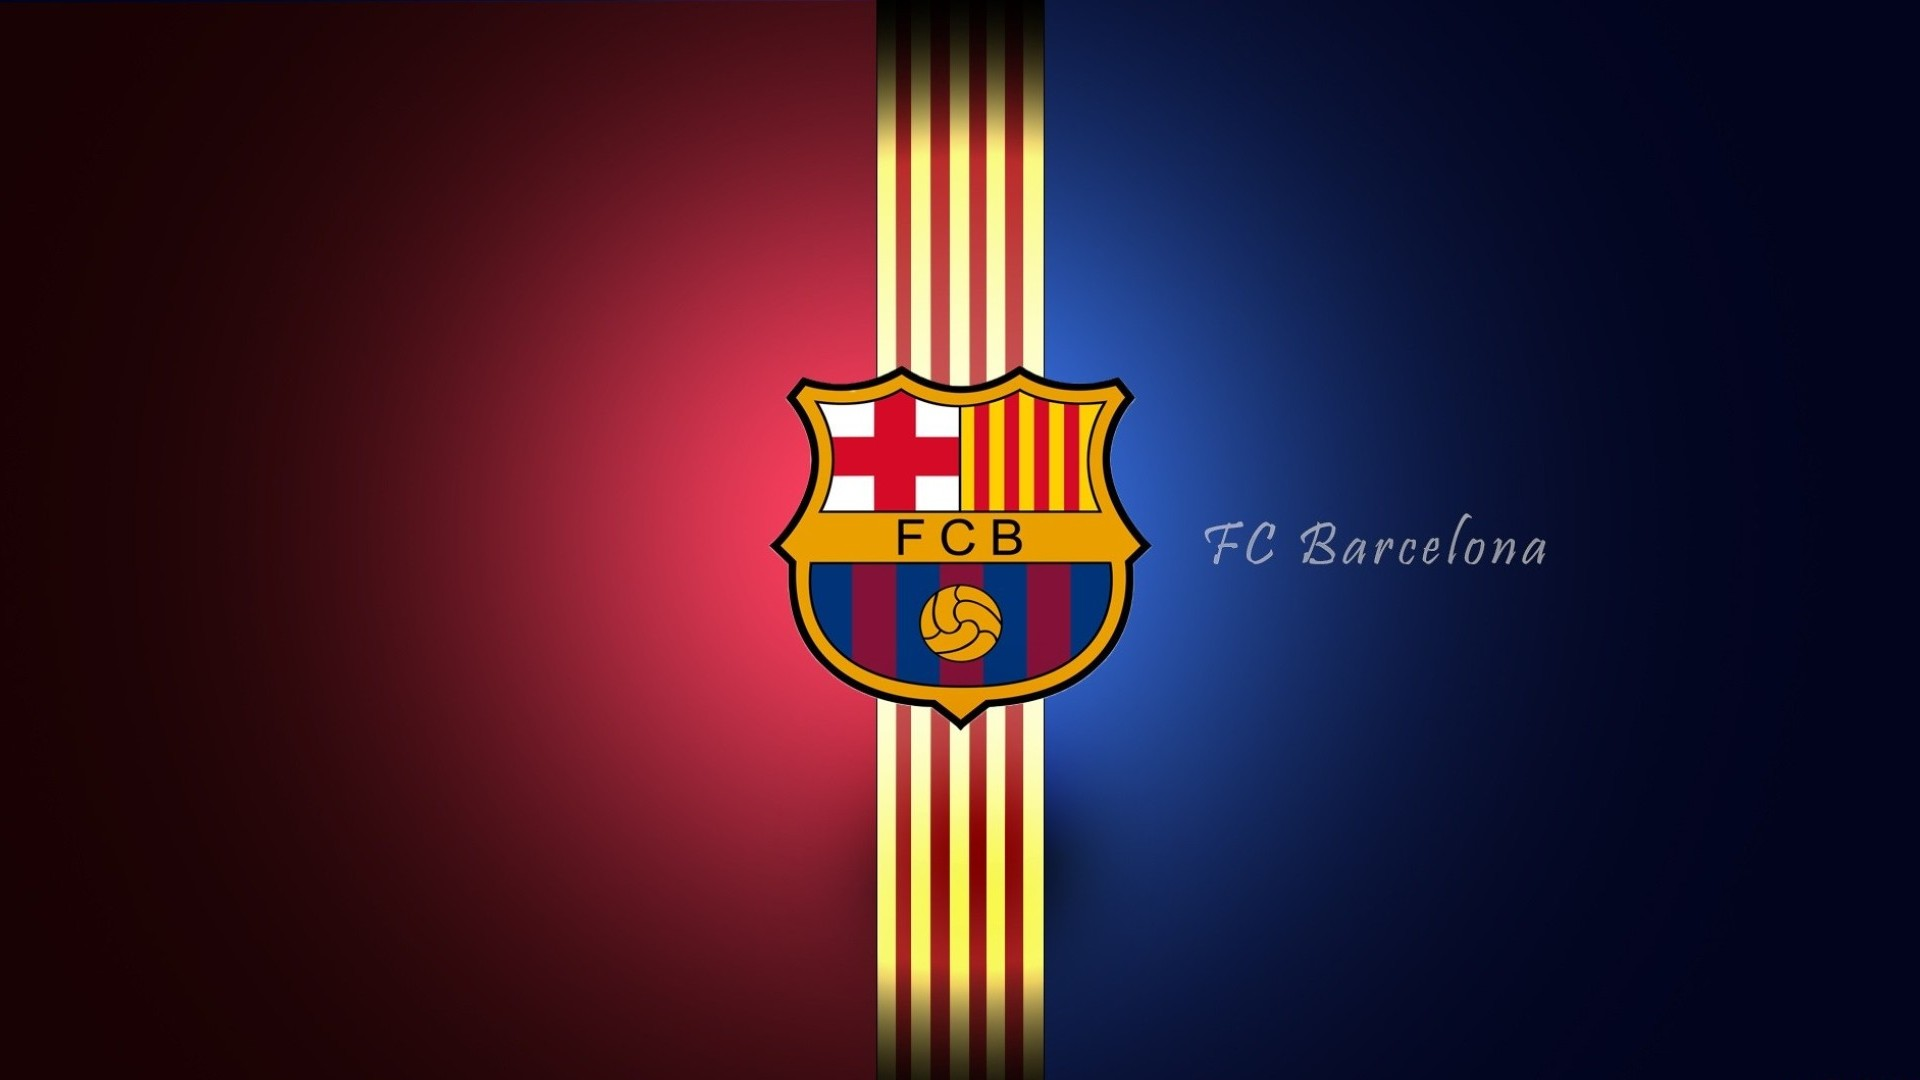 fc barcelona full hd papel de parede and planos de fundo